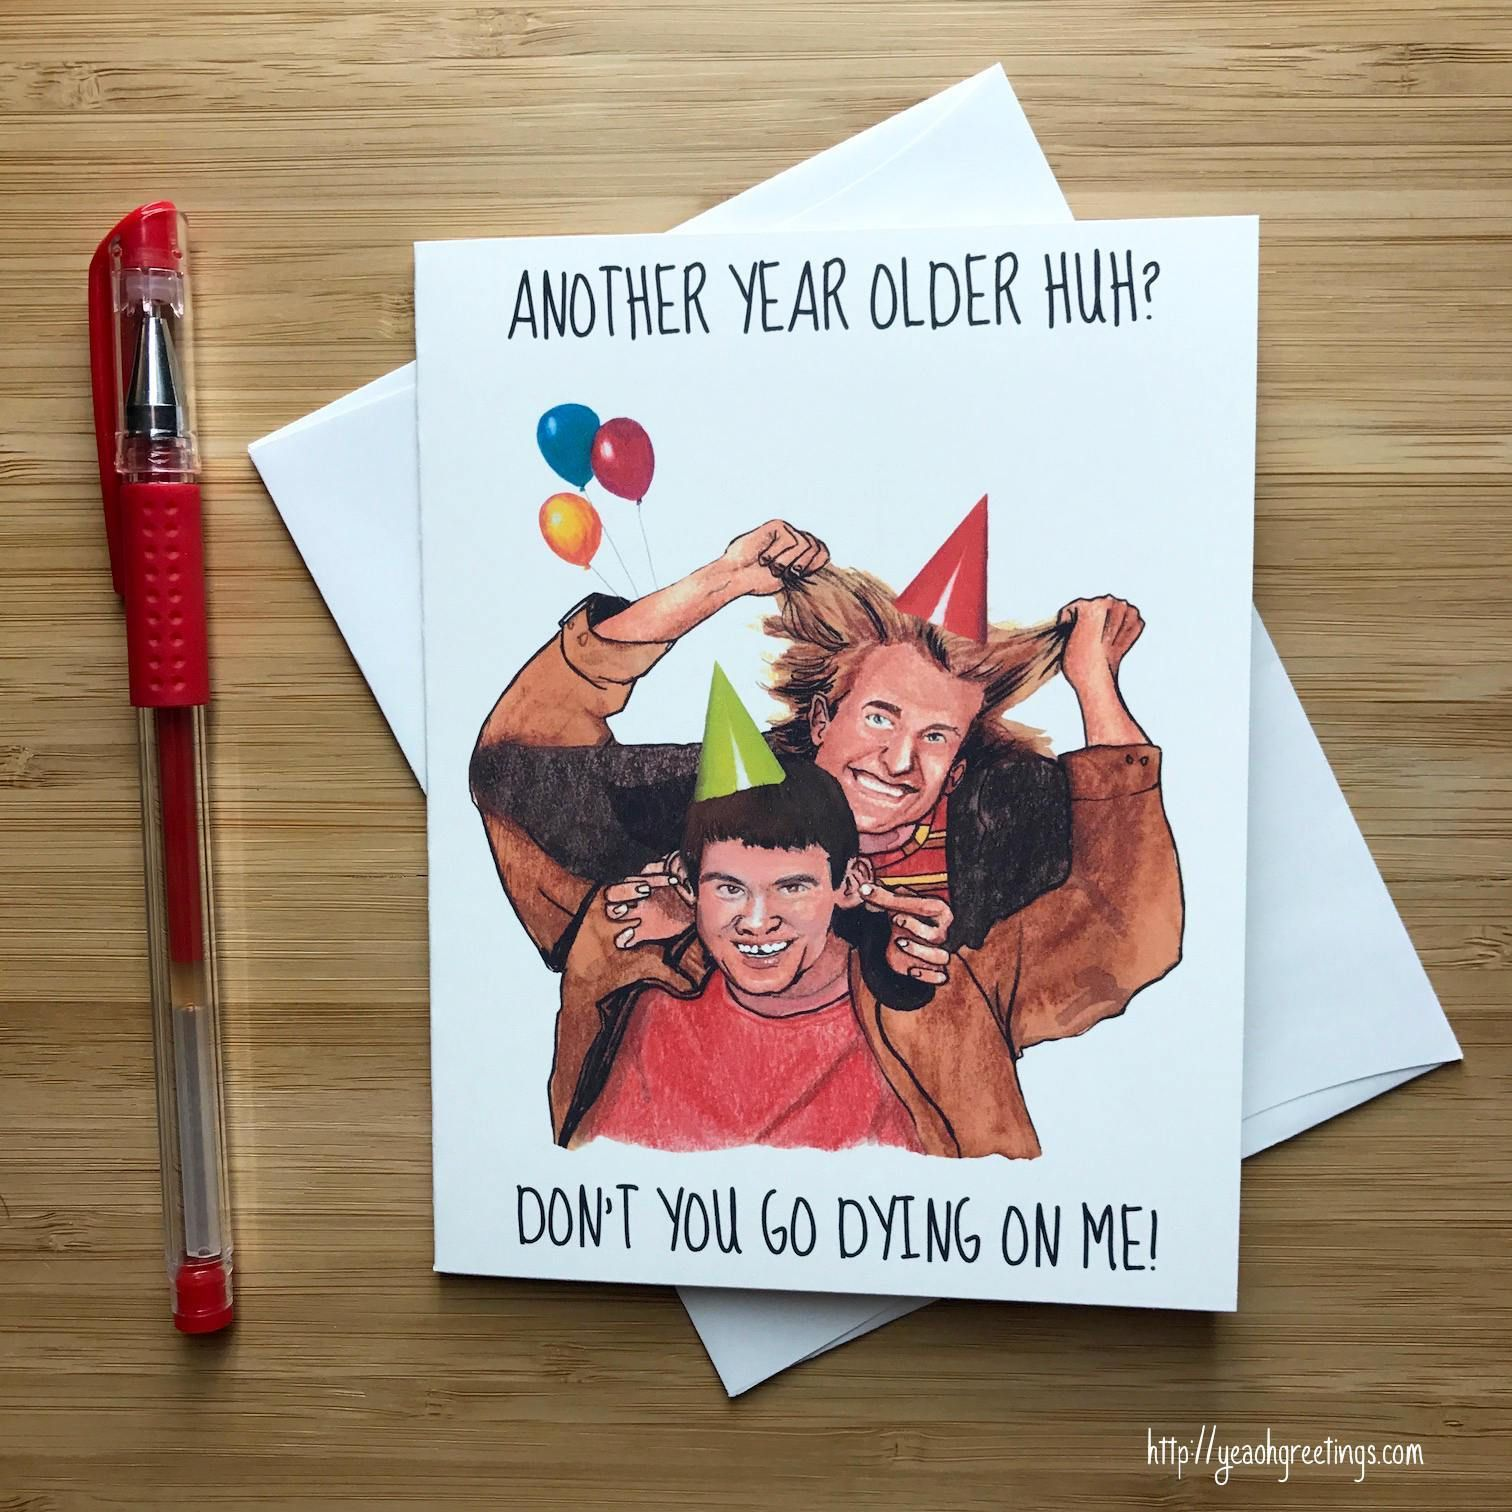 """""""ANOTHER YEAR OLDER HUH? DONT YOU GO DYING ON ME!"""" MATERIAL & PACKAGING: - Printed on premium, heavy cardstock. - Card measures 4.25"""" x 5.5"""" inches folded (A2)- Blank inside for your personal message.- Includes a 4.25"""" x 5.5"""" inch A2 envelope for your card.- Includes an extra 5x7"""" envelope in case you want to mail your card.- Card wrapped in a protective cellophane sleeve."""